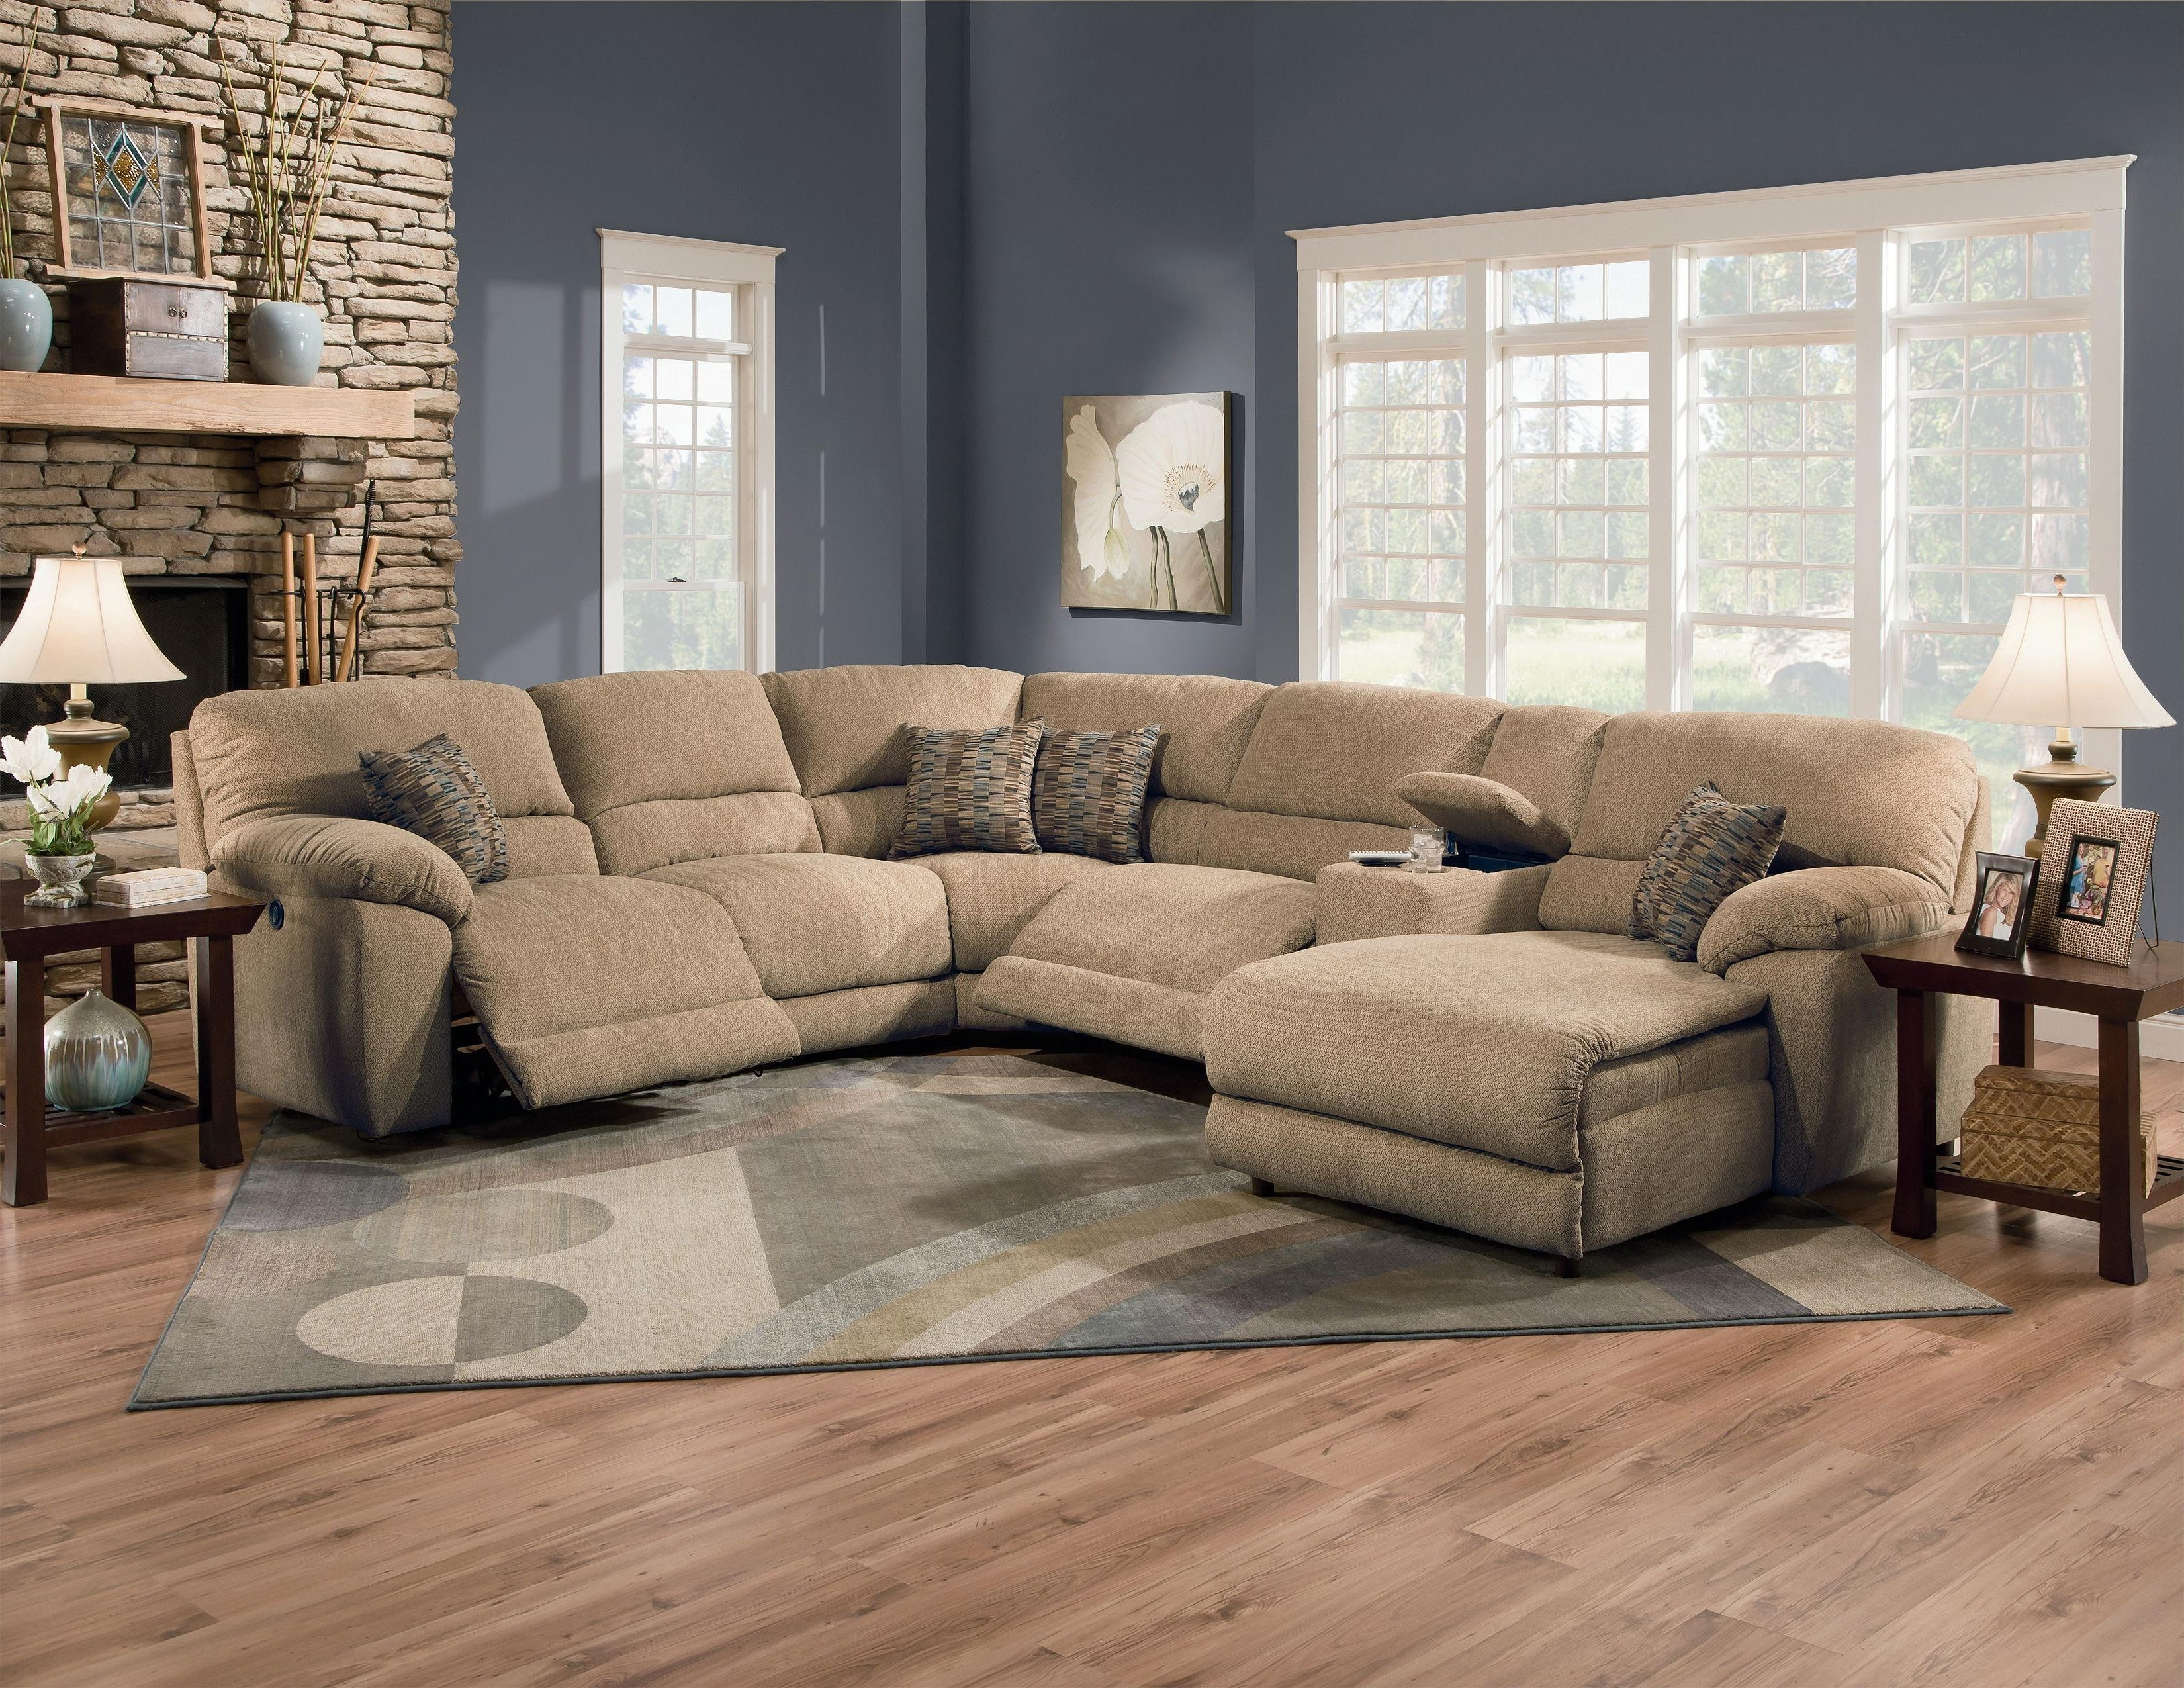 Recent Lane Furniture: Rivers Collection Featuring Power Reclining Within Virginia Sectional Sofas (View 13 of 15)